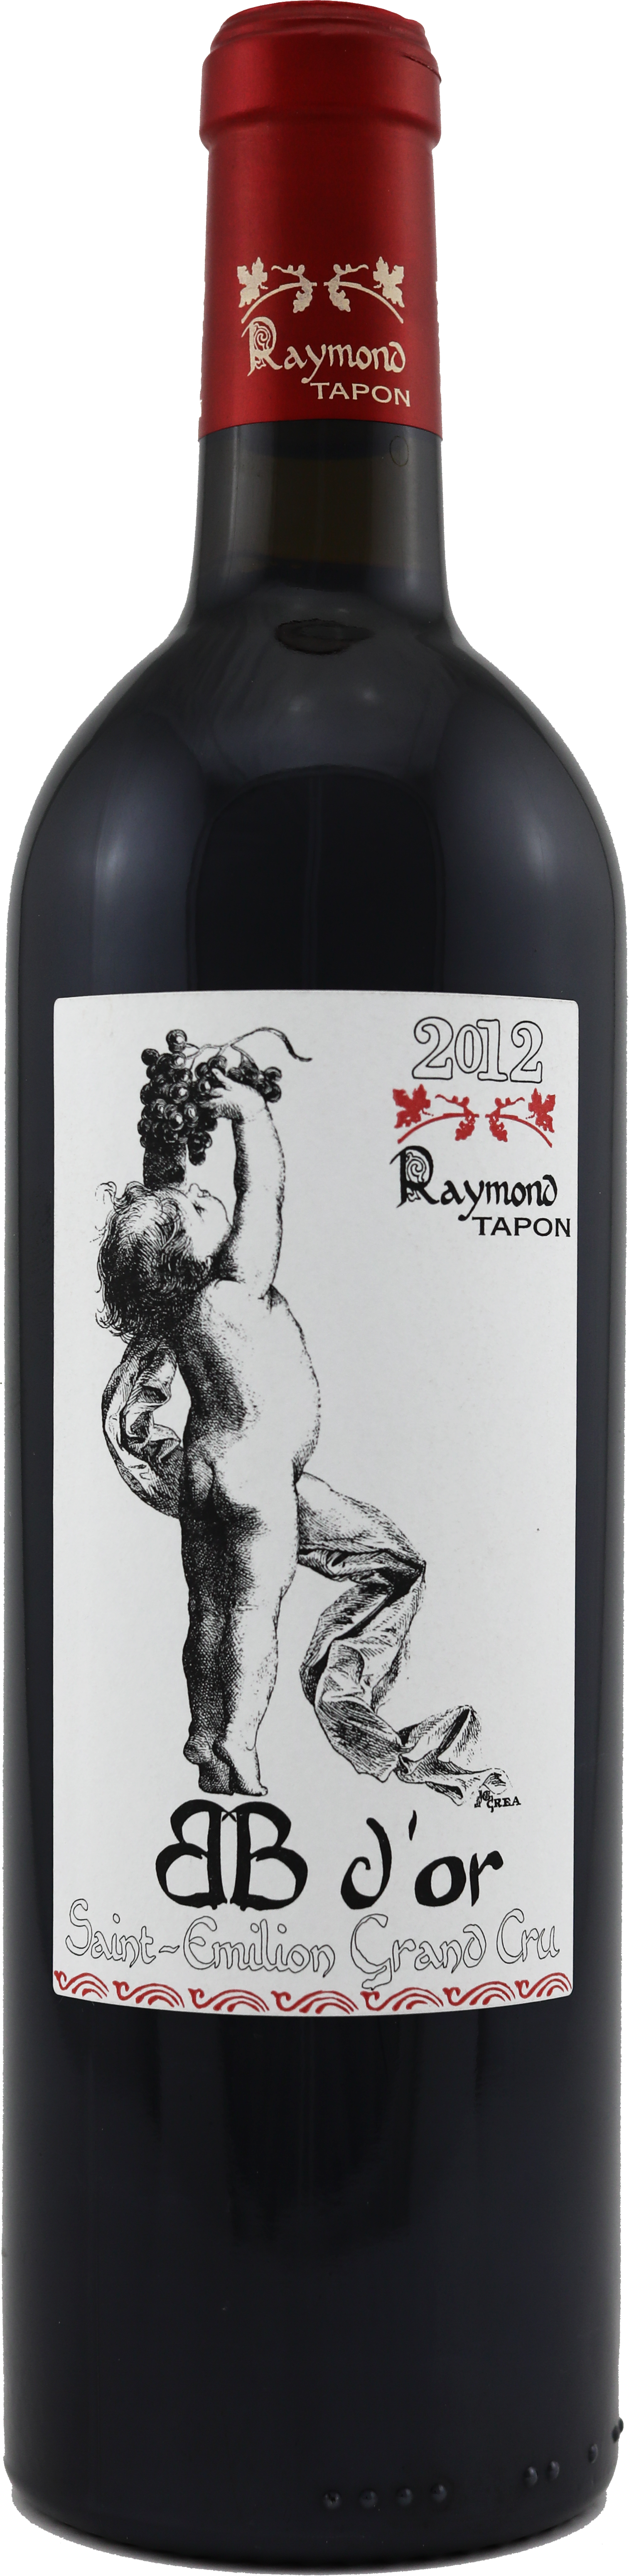 CHATEAU RAYMOND TAPON cuvée BB D'OR